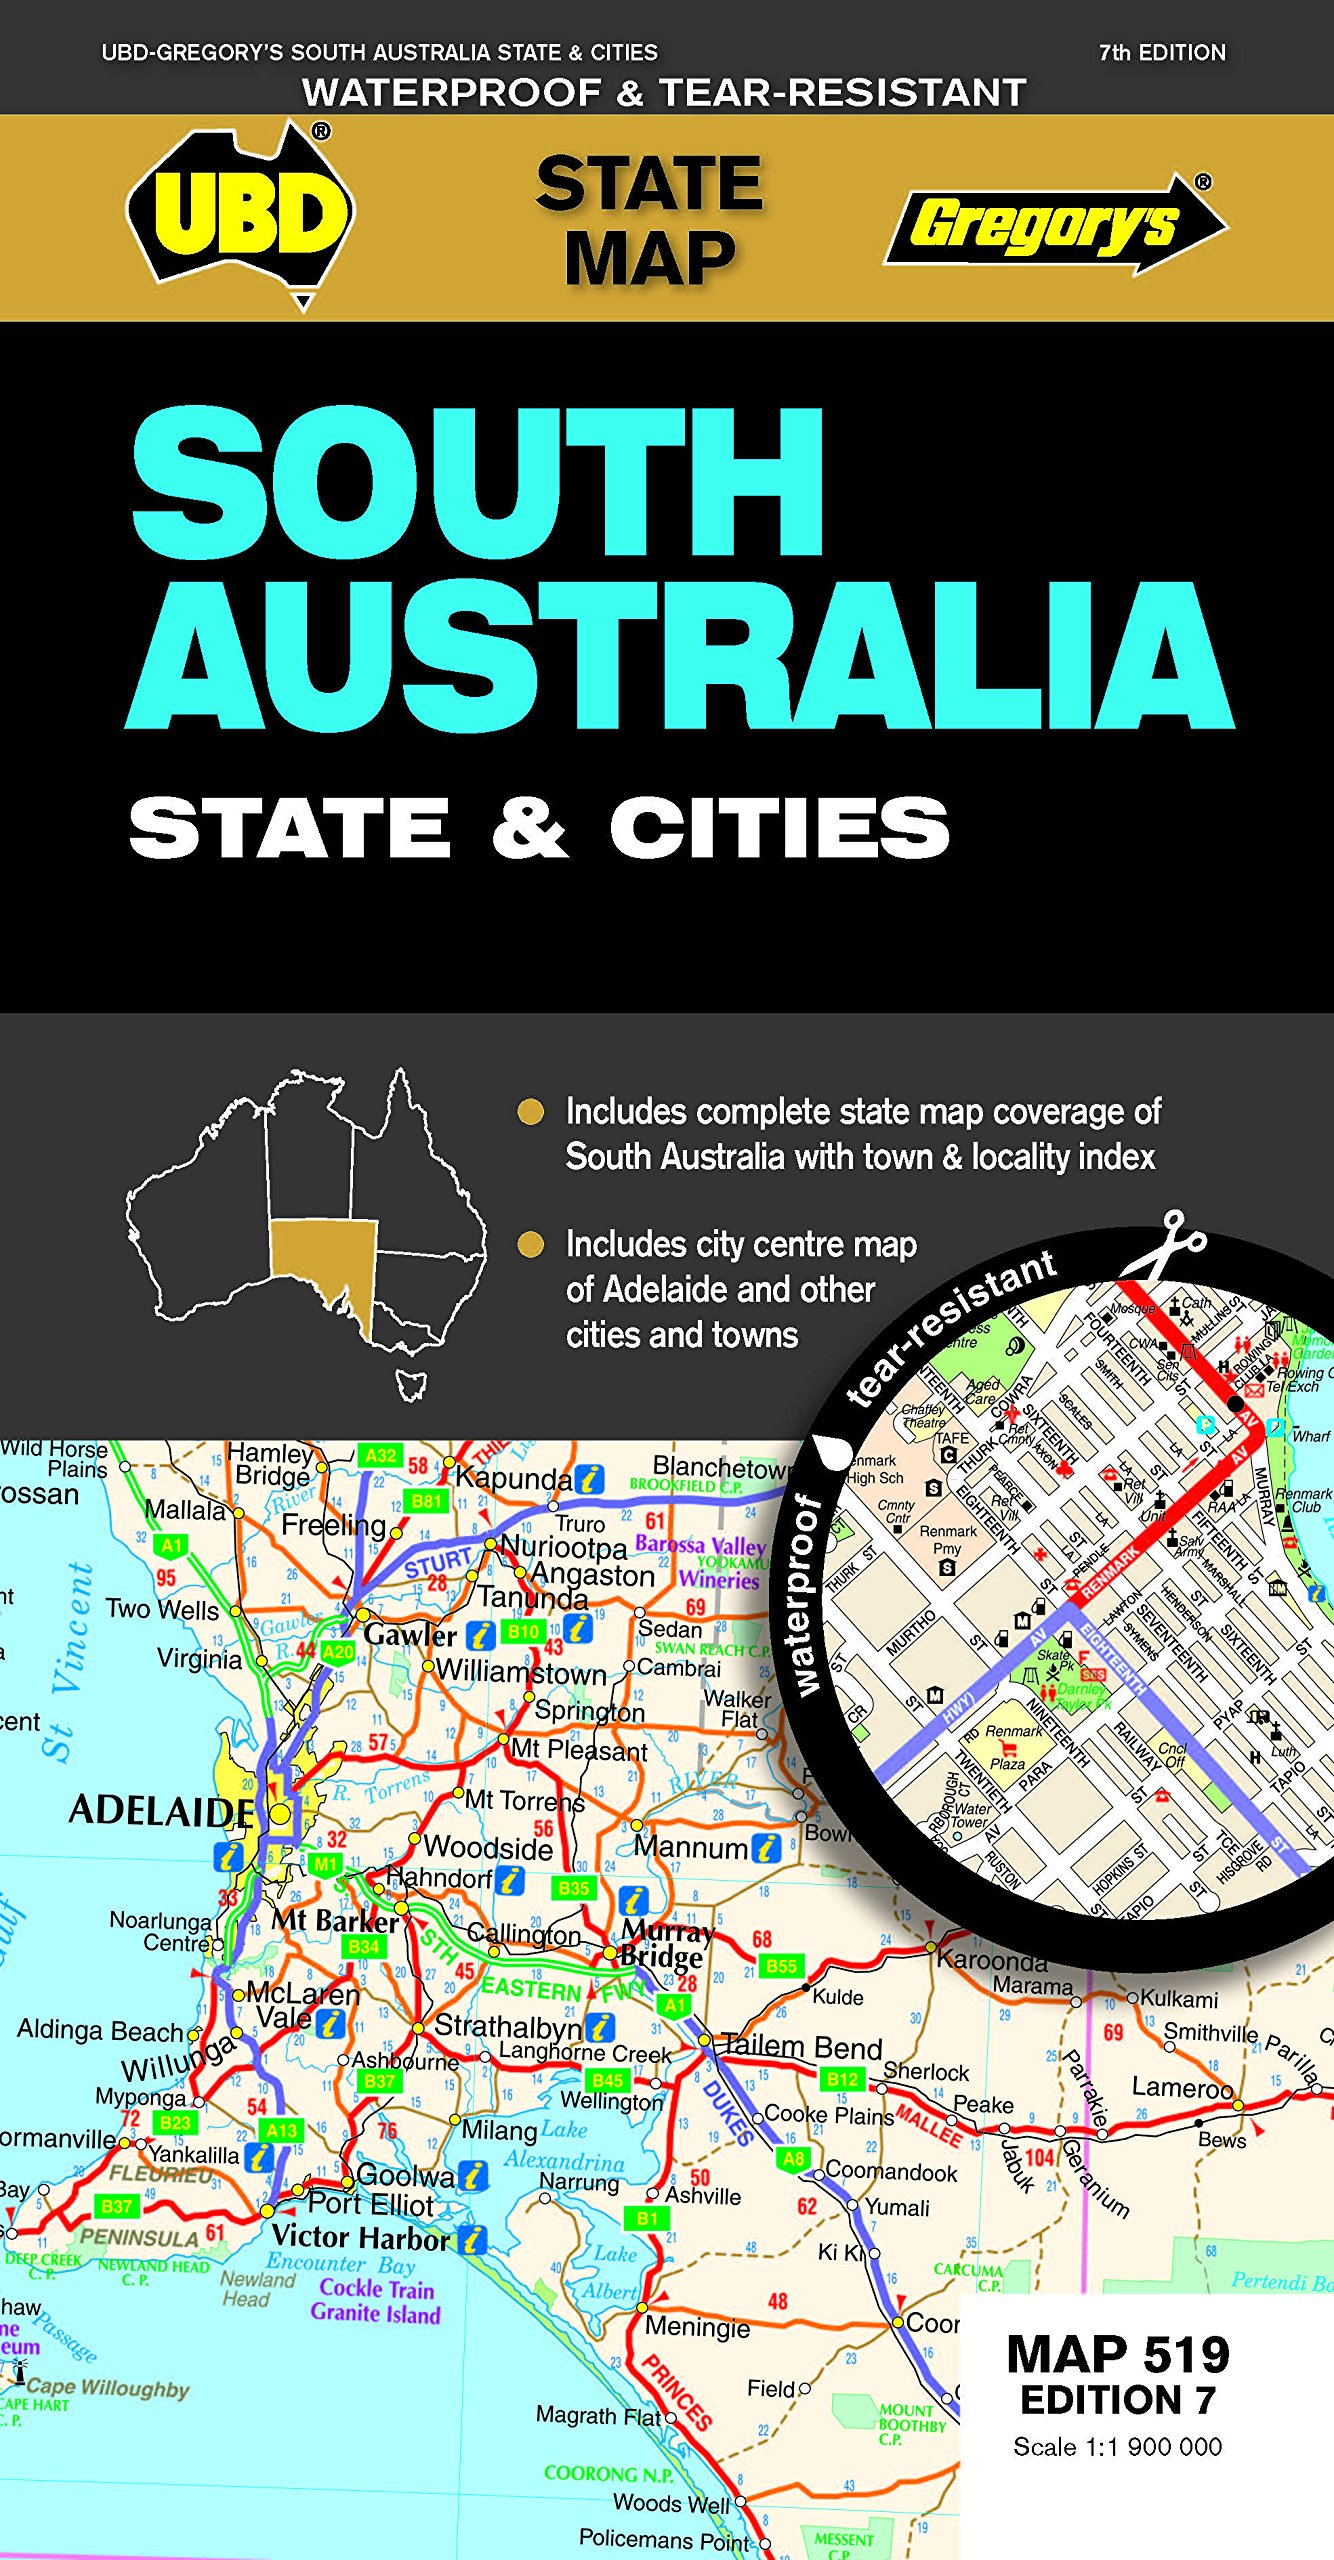 South Australia State Cities Map 519 7ed: 9780731930586 ... on map of broome australia, map of uk, map of africa with capitals, map of sydney, map queensland australia, map of townsville australia, map of austria, map western australia, costa rica map with cities, map of asia, map of france, map of north island new zealand, map of melbourne australia, map of new zealand and surrounding countries, map of oceania countries, map of india, map of australia new zealand, map of european countries, map australia major cities, indonesia map with cities,